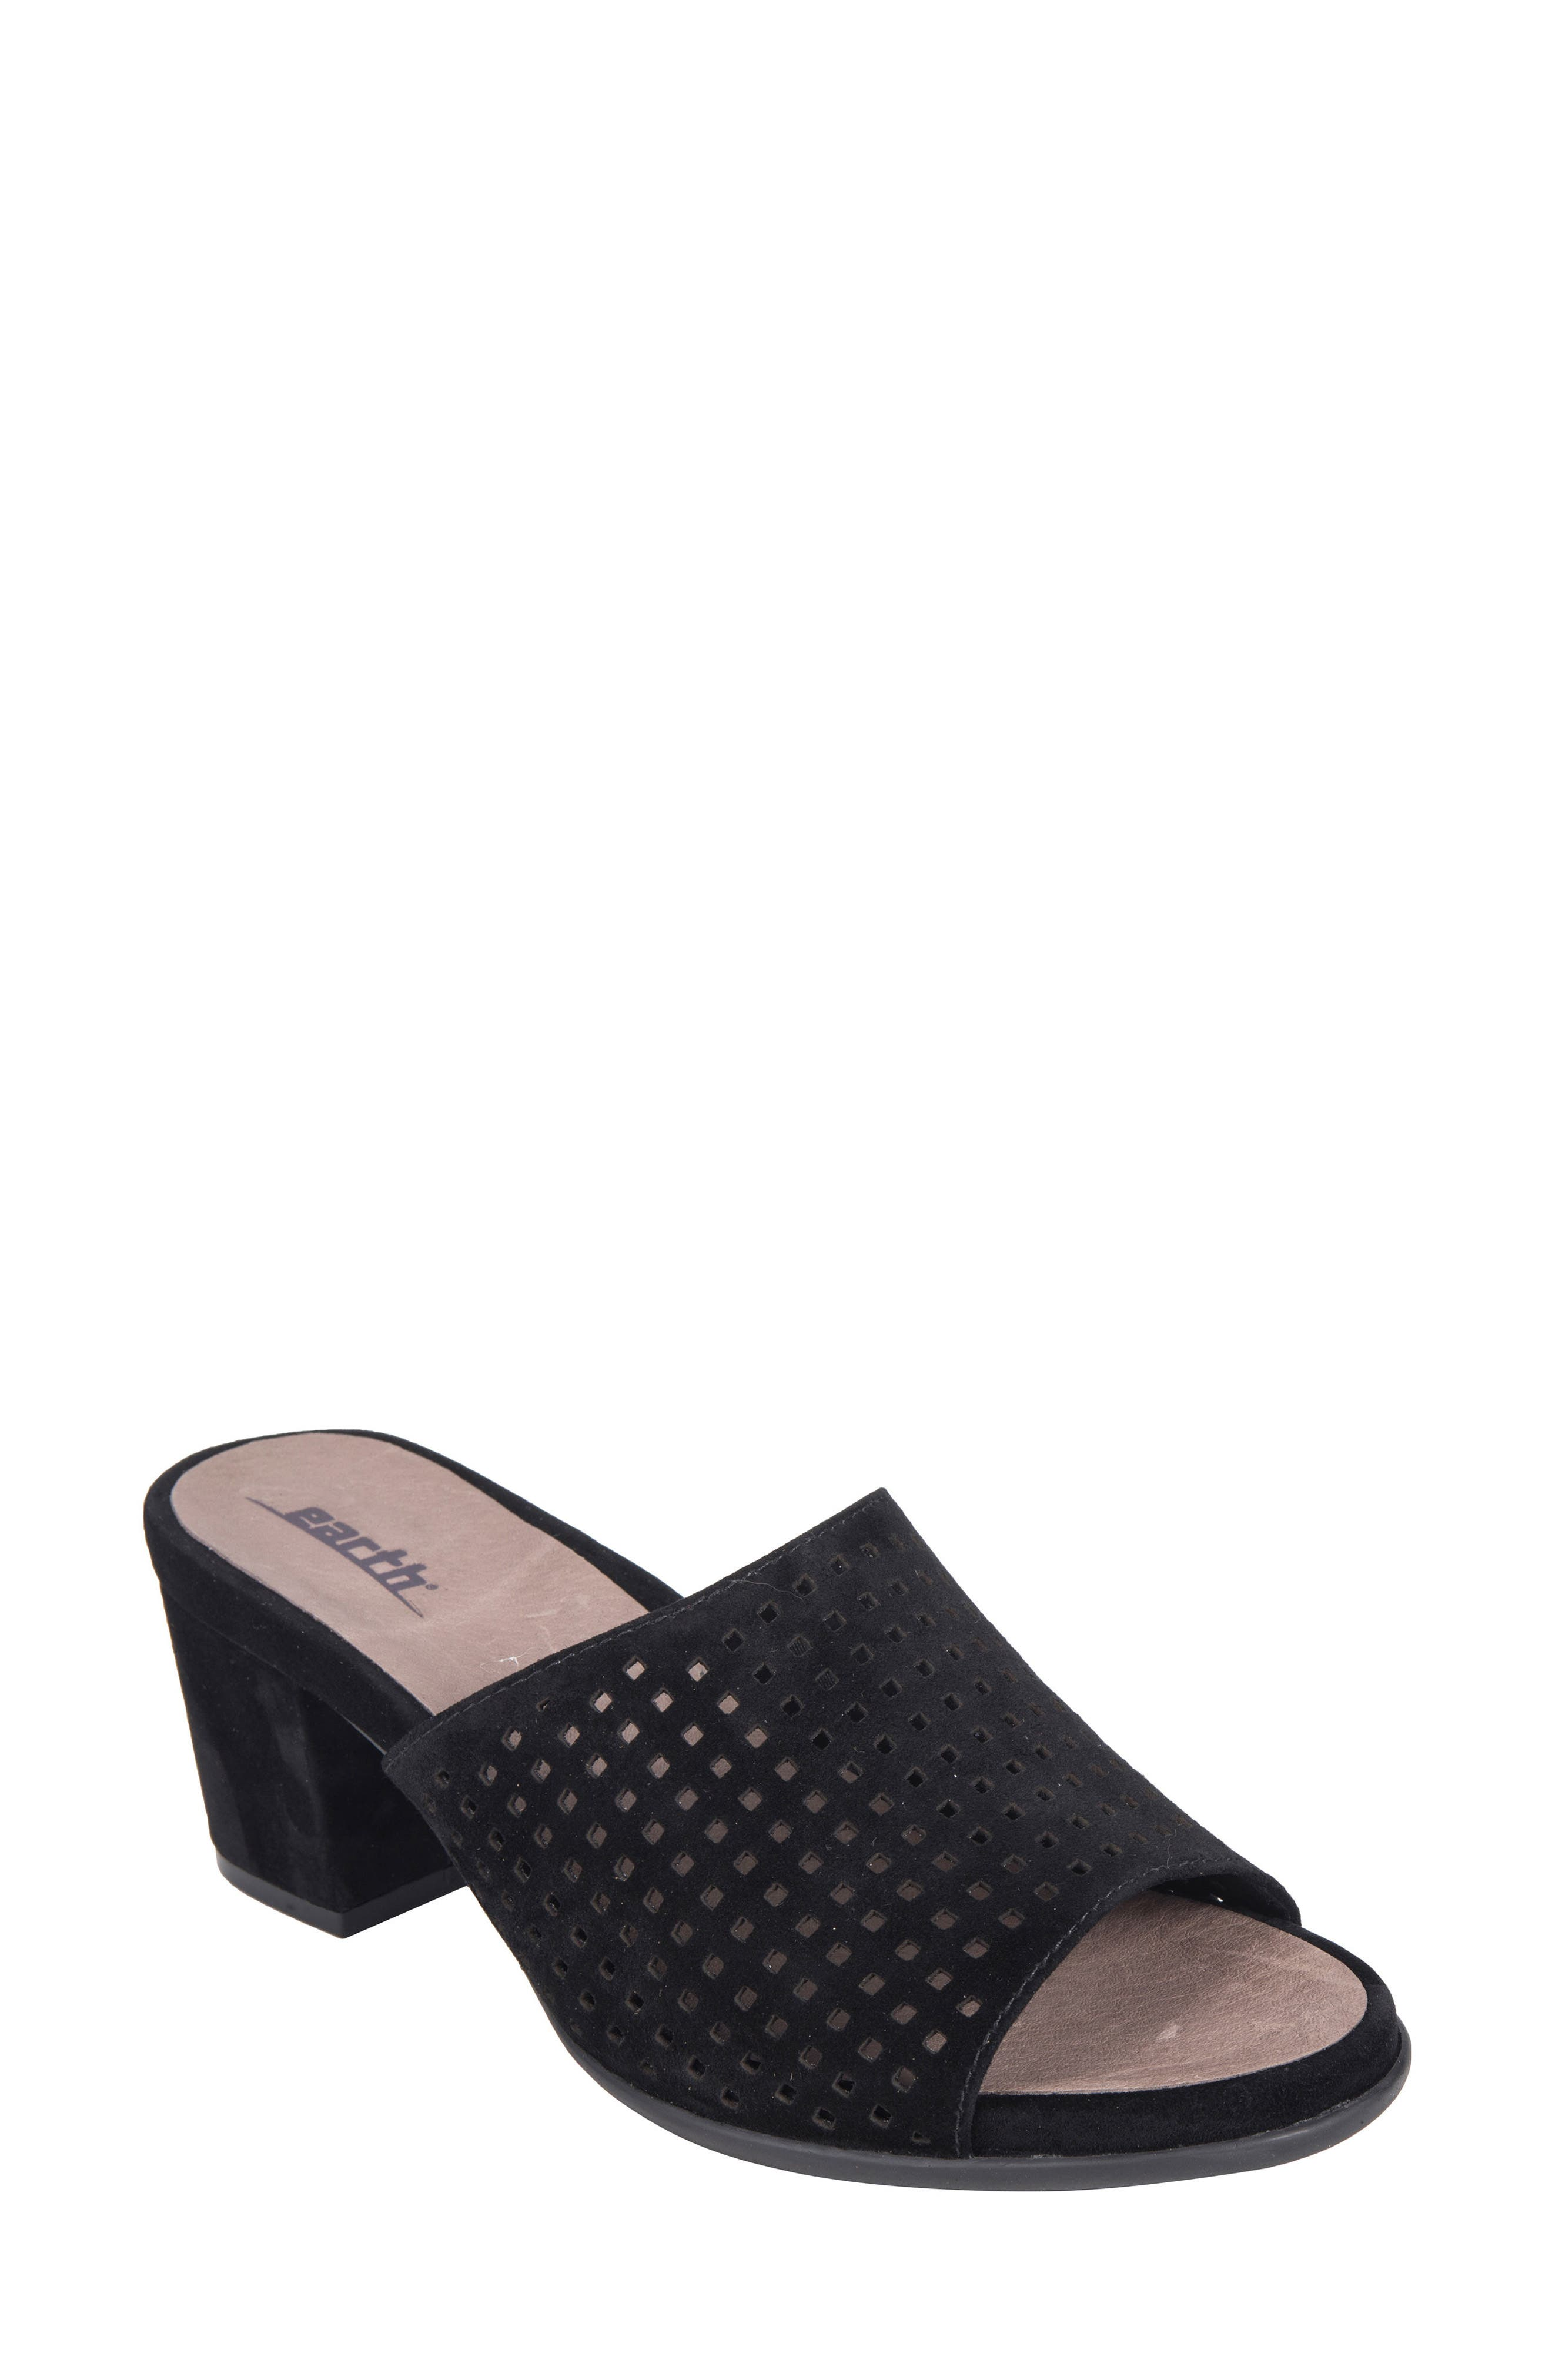 Ibiza Perforated Sandal,                         Main,                         color, BLACK SUEDE